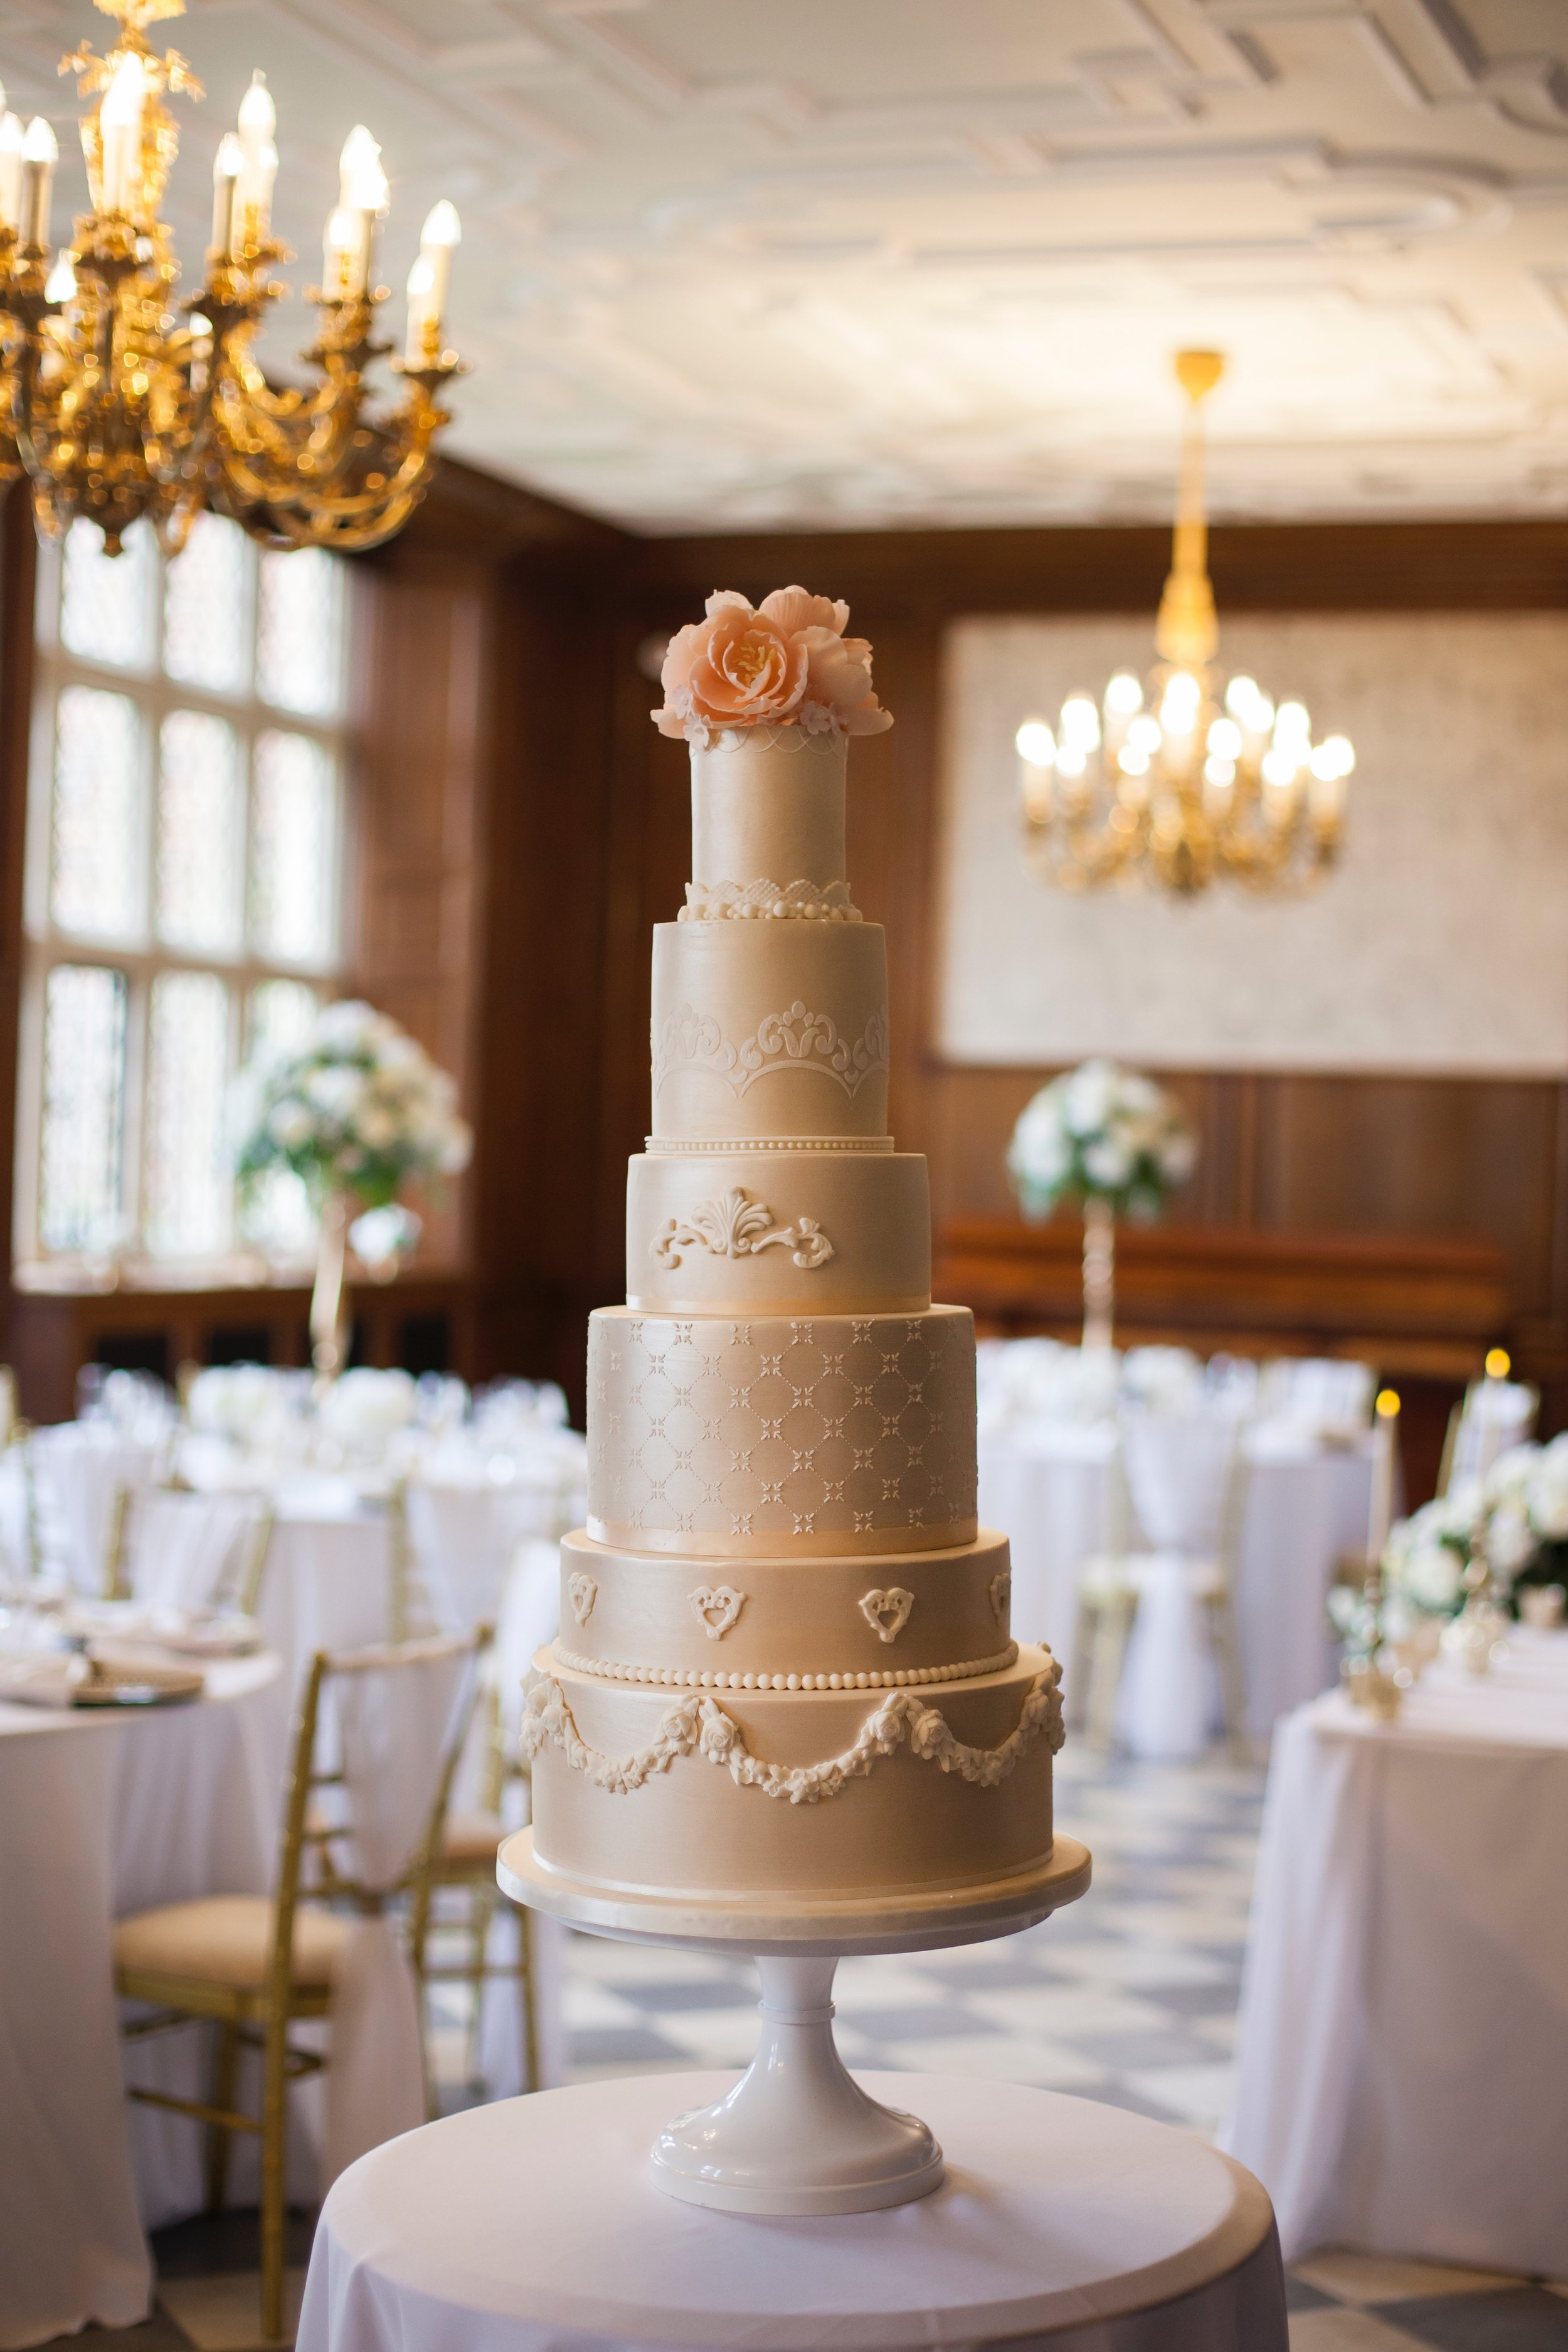 This 6-tiered cake made the perfect masterpiece for the Herfordshire wedding venue North Mymms Park. Photography by  Esme Robinson.